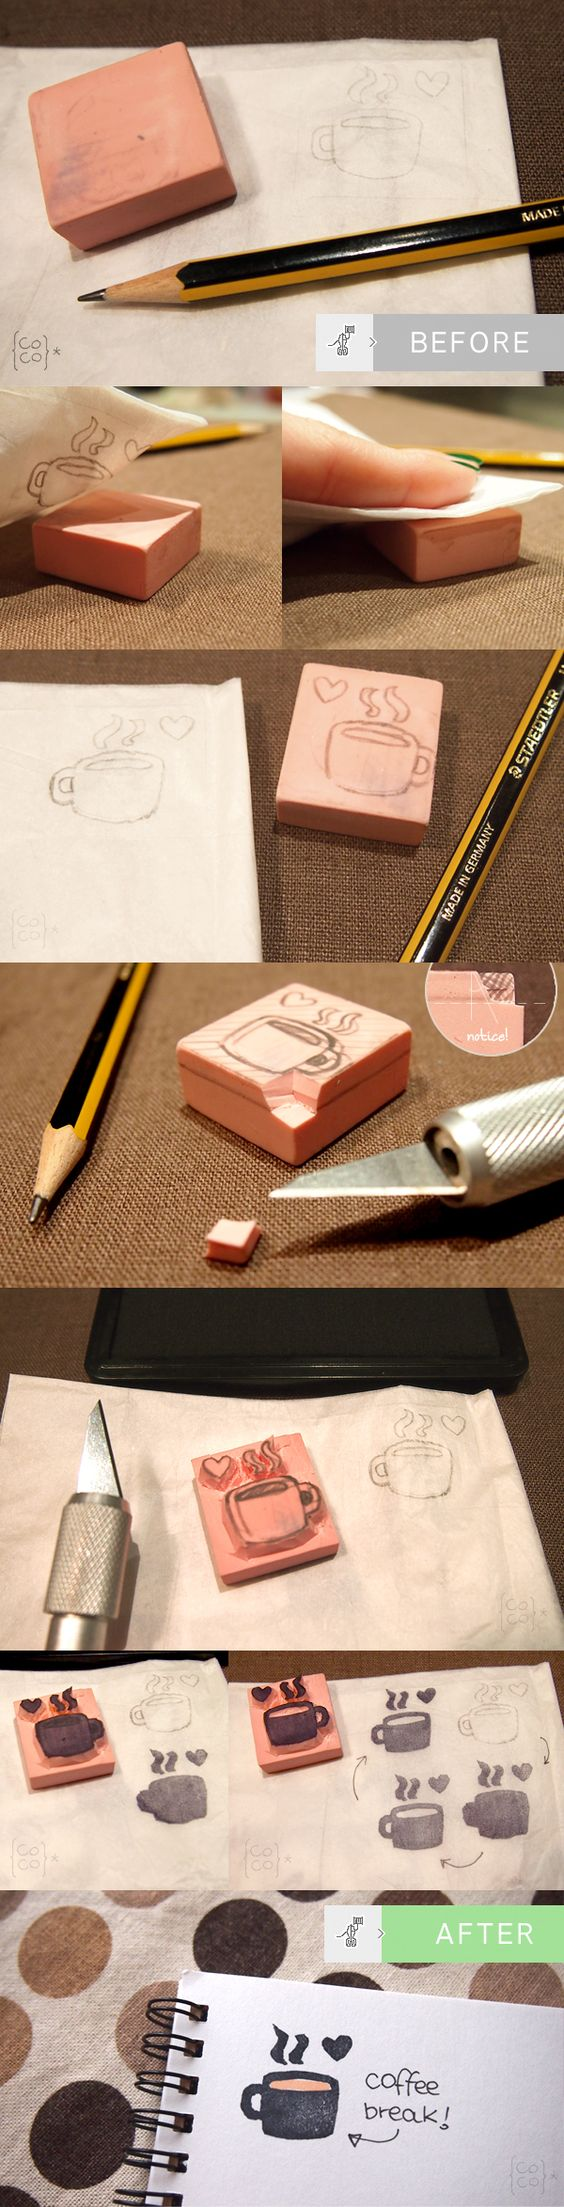 "How to do Rubber Stamps! .... unfortunately the link says ""page not found"" but i am certain if i snoop well enough, I WILL find the original source post...here goest!"